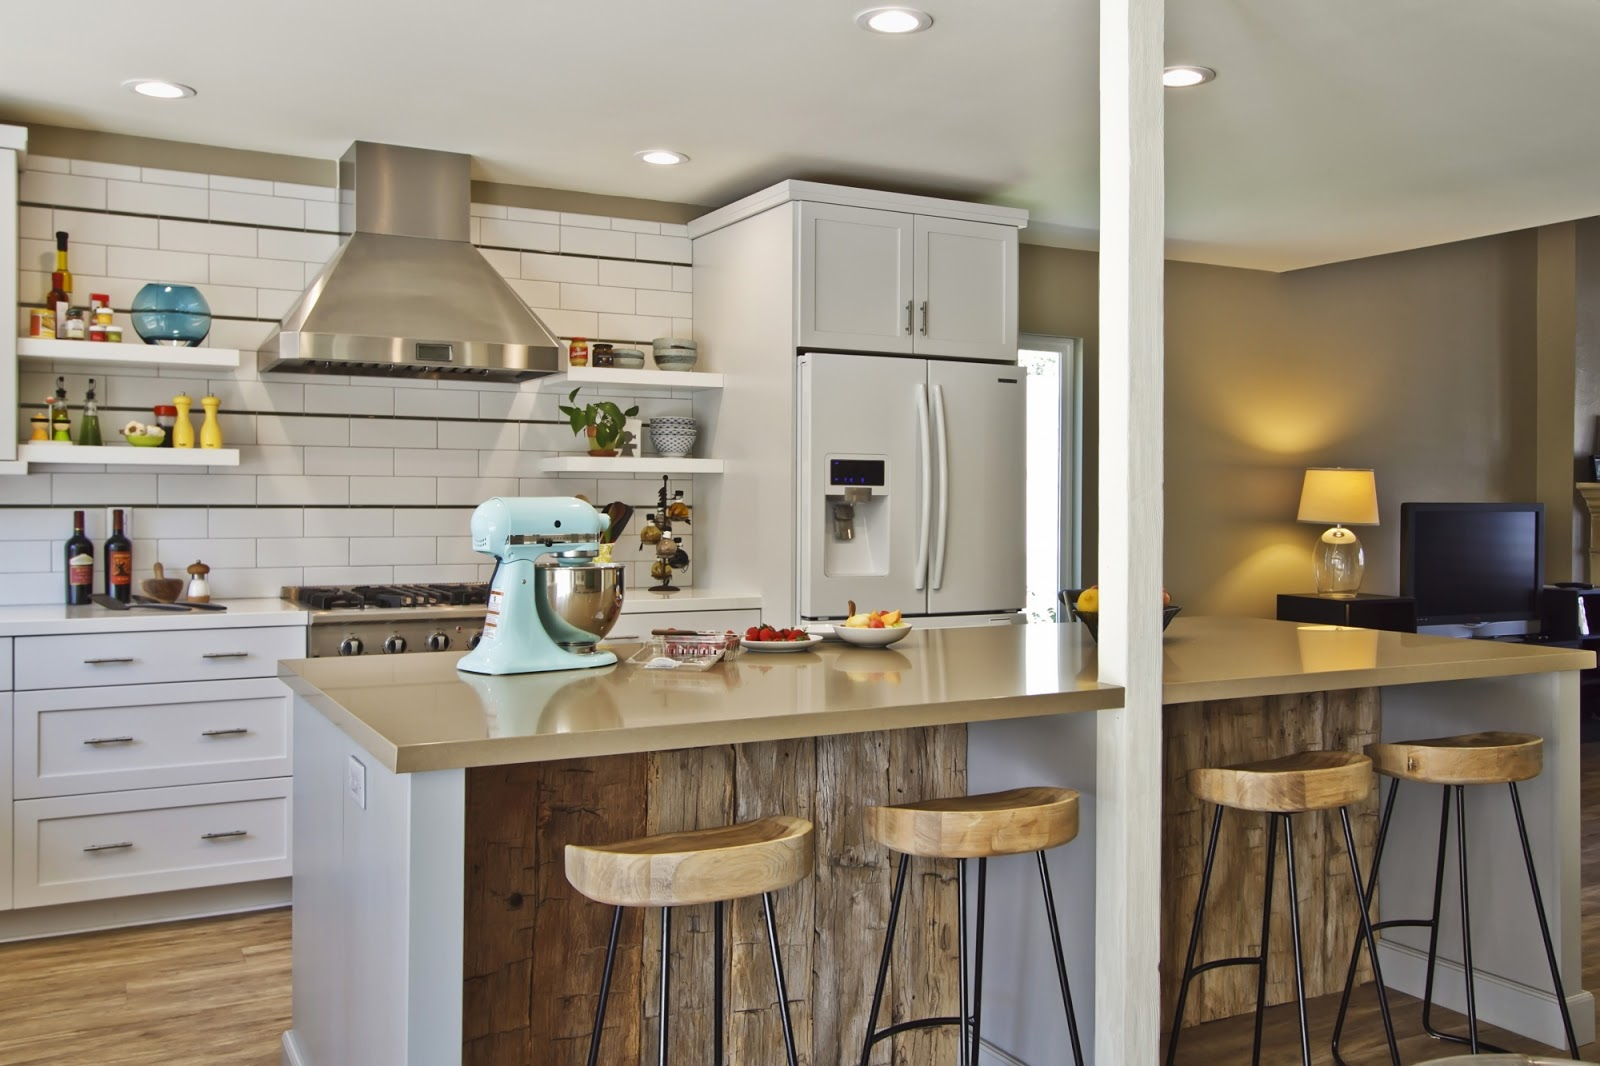 10 kitchens with quartz countertops kitchen countertops quartz Countertops are CaesarStone Notice that the island is a sand color and the stove run counters are white Photo Cultivate